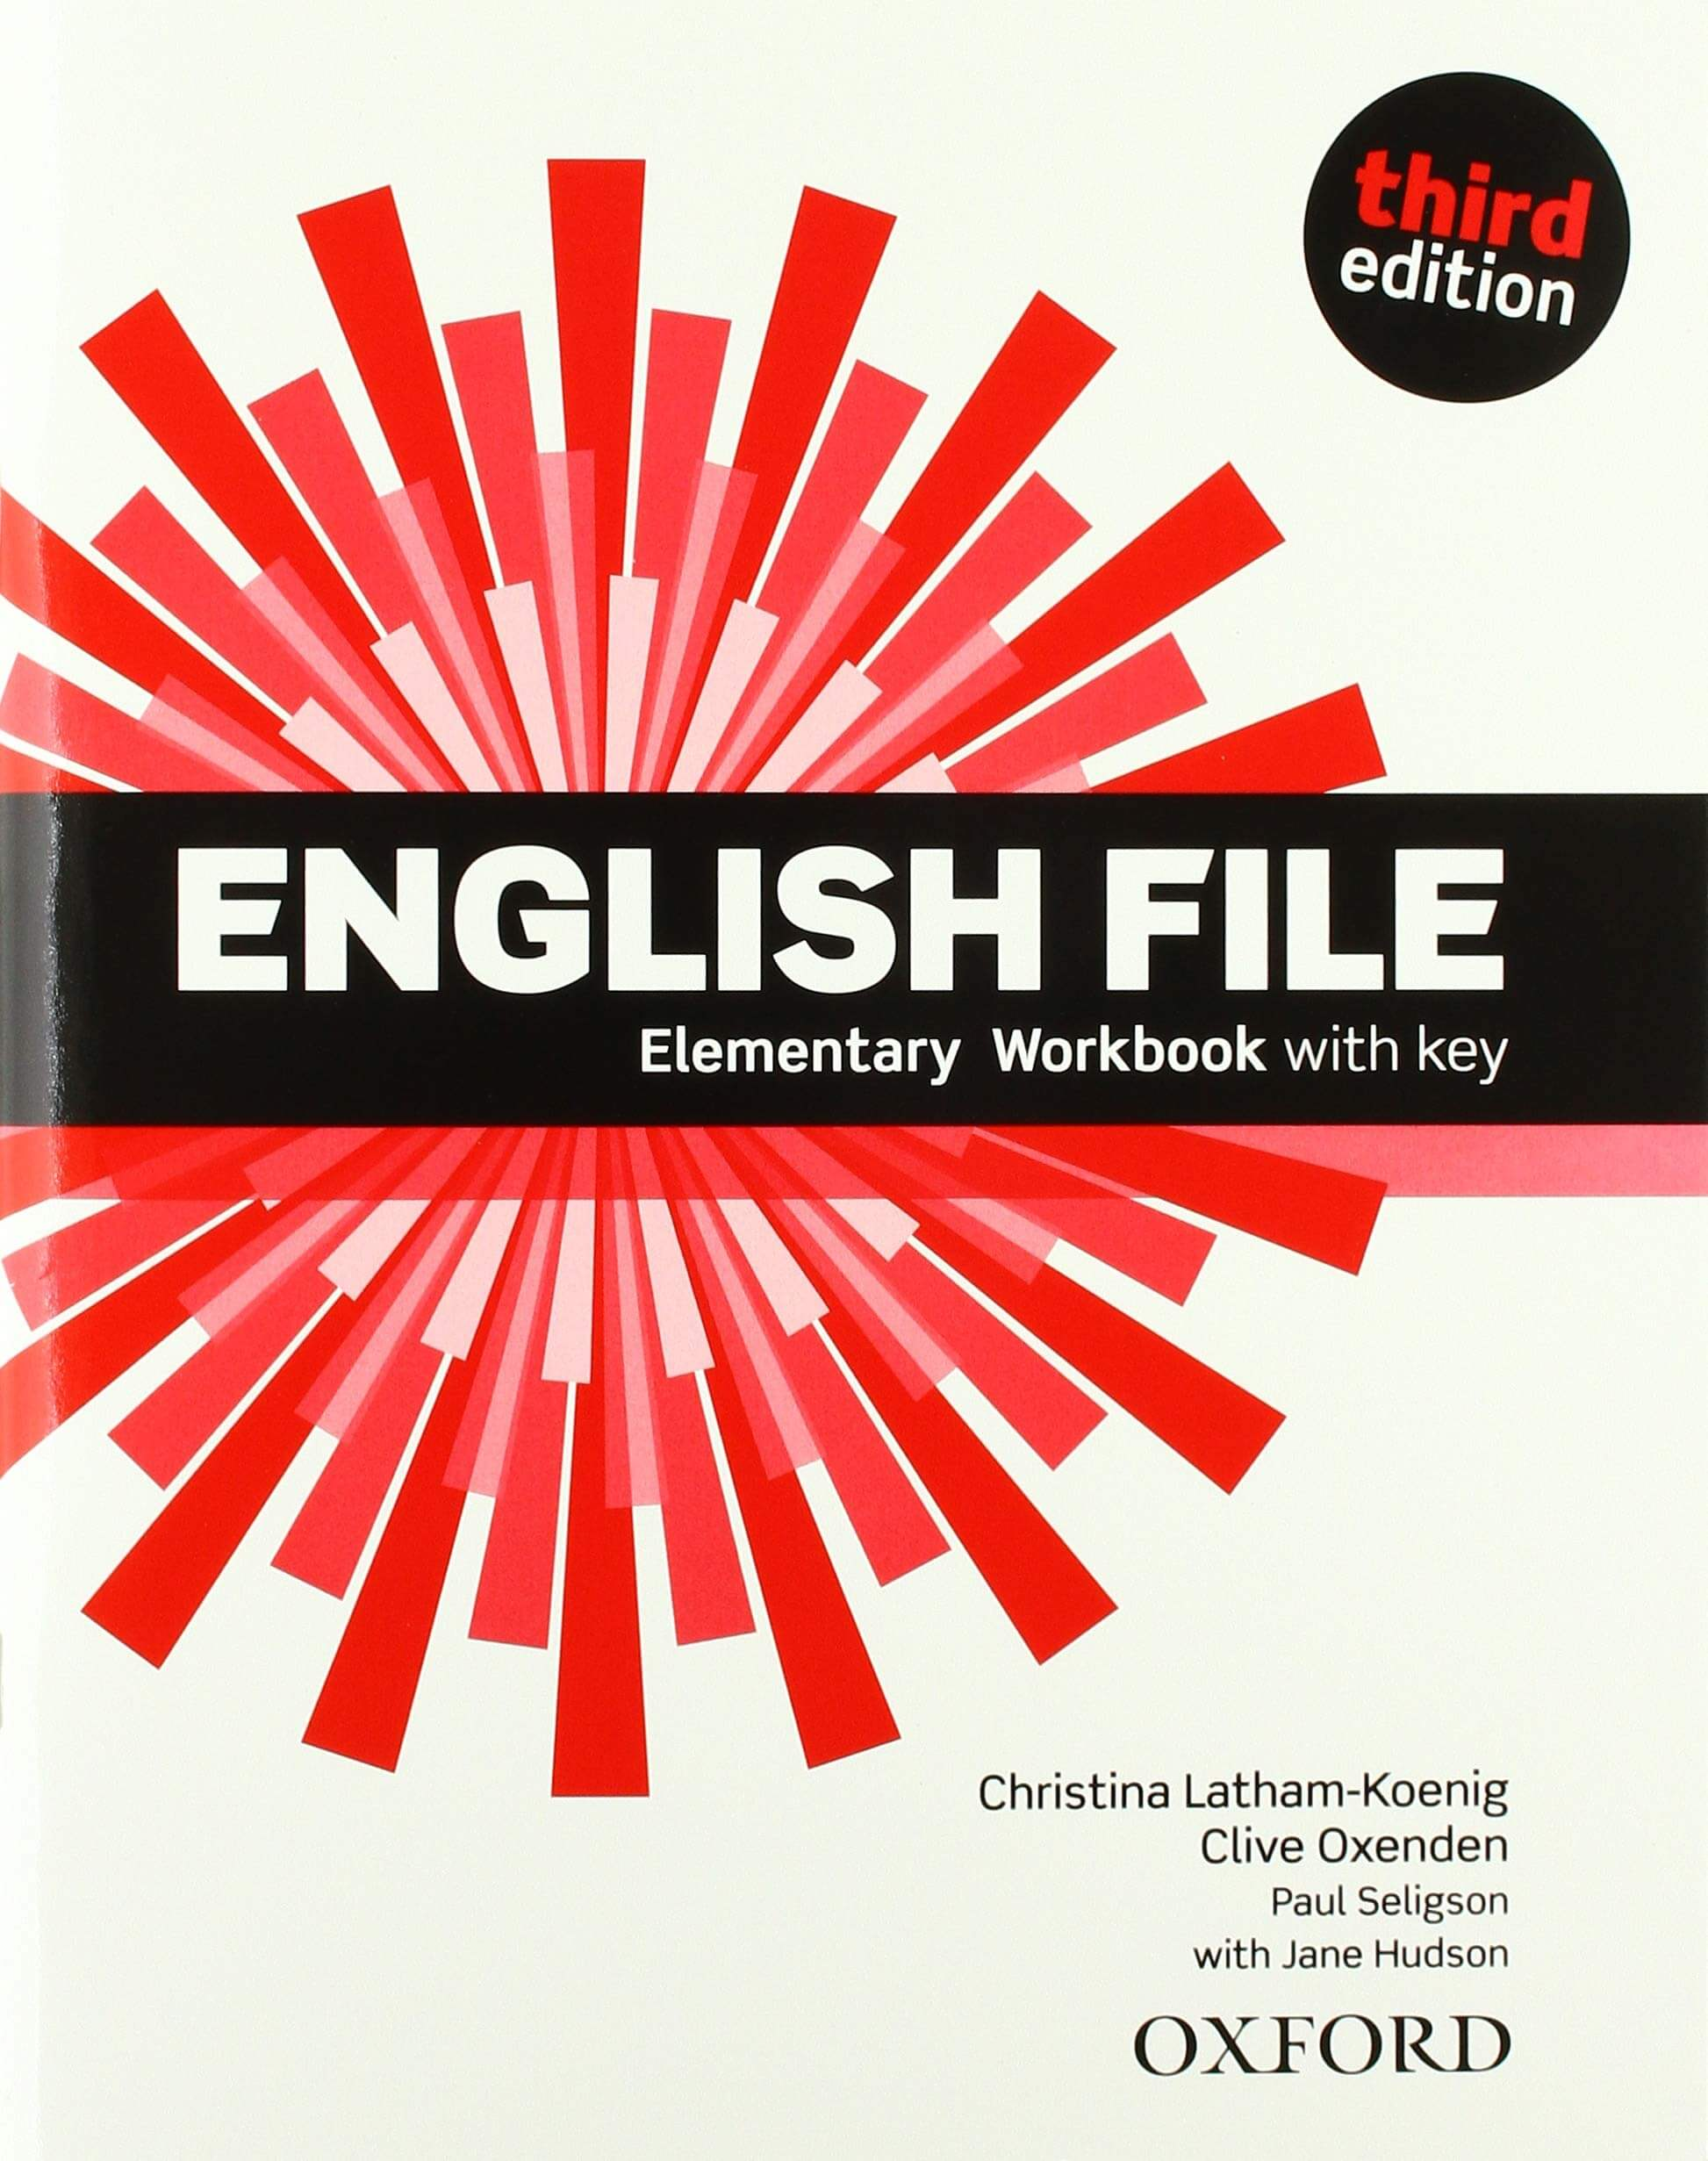 ENGLISH FILE ELEMENTARY 3rd ED Workbook with Key